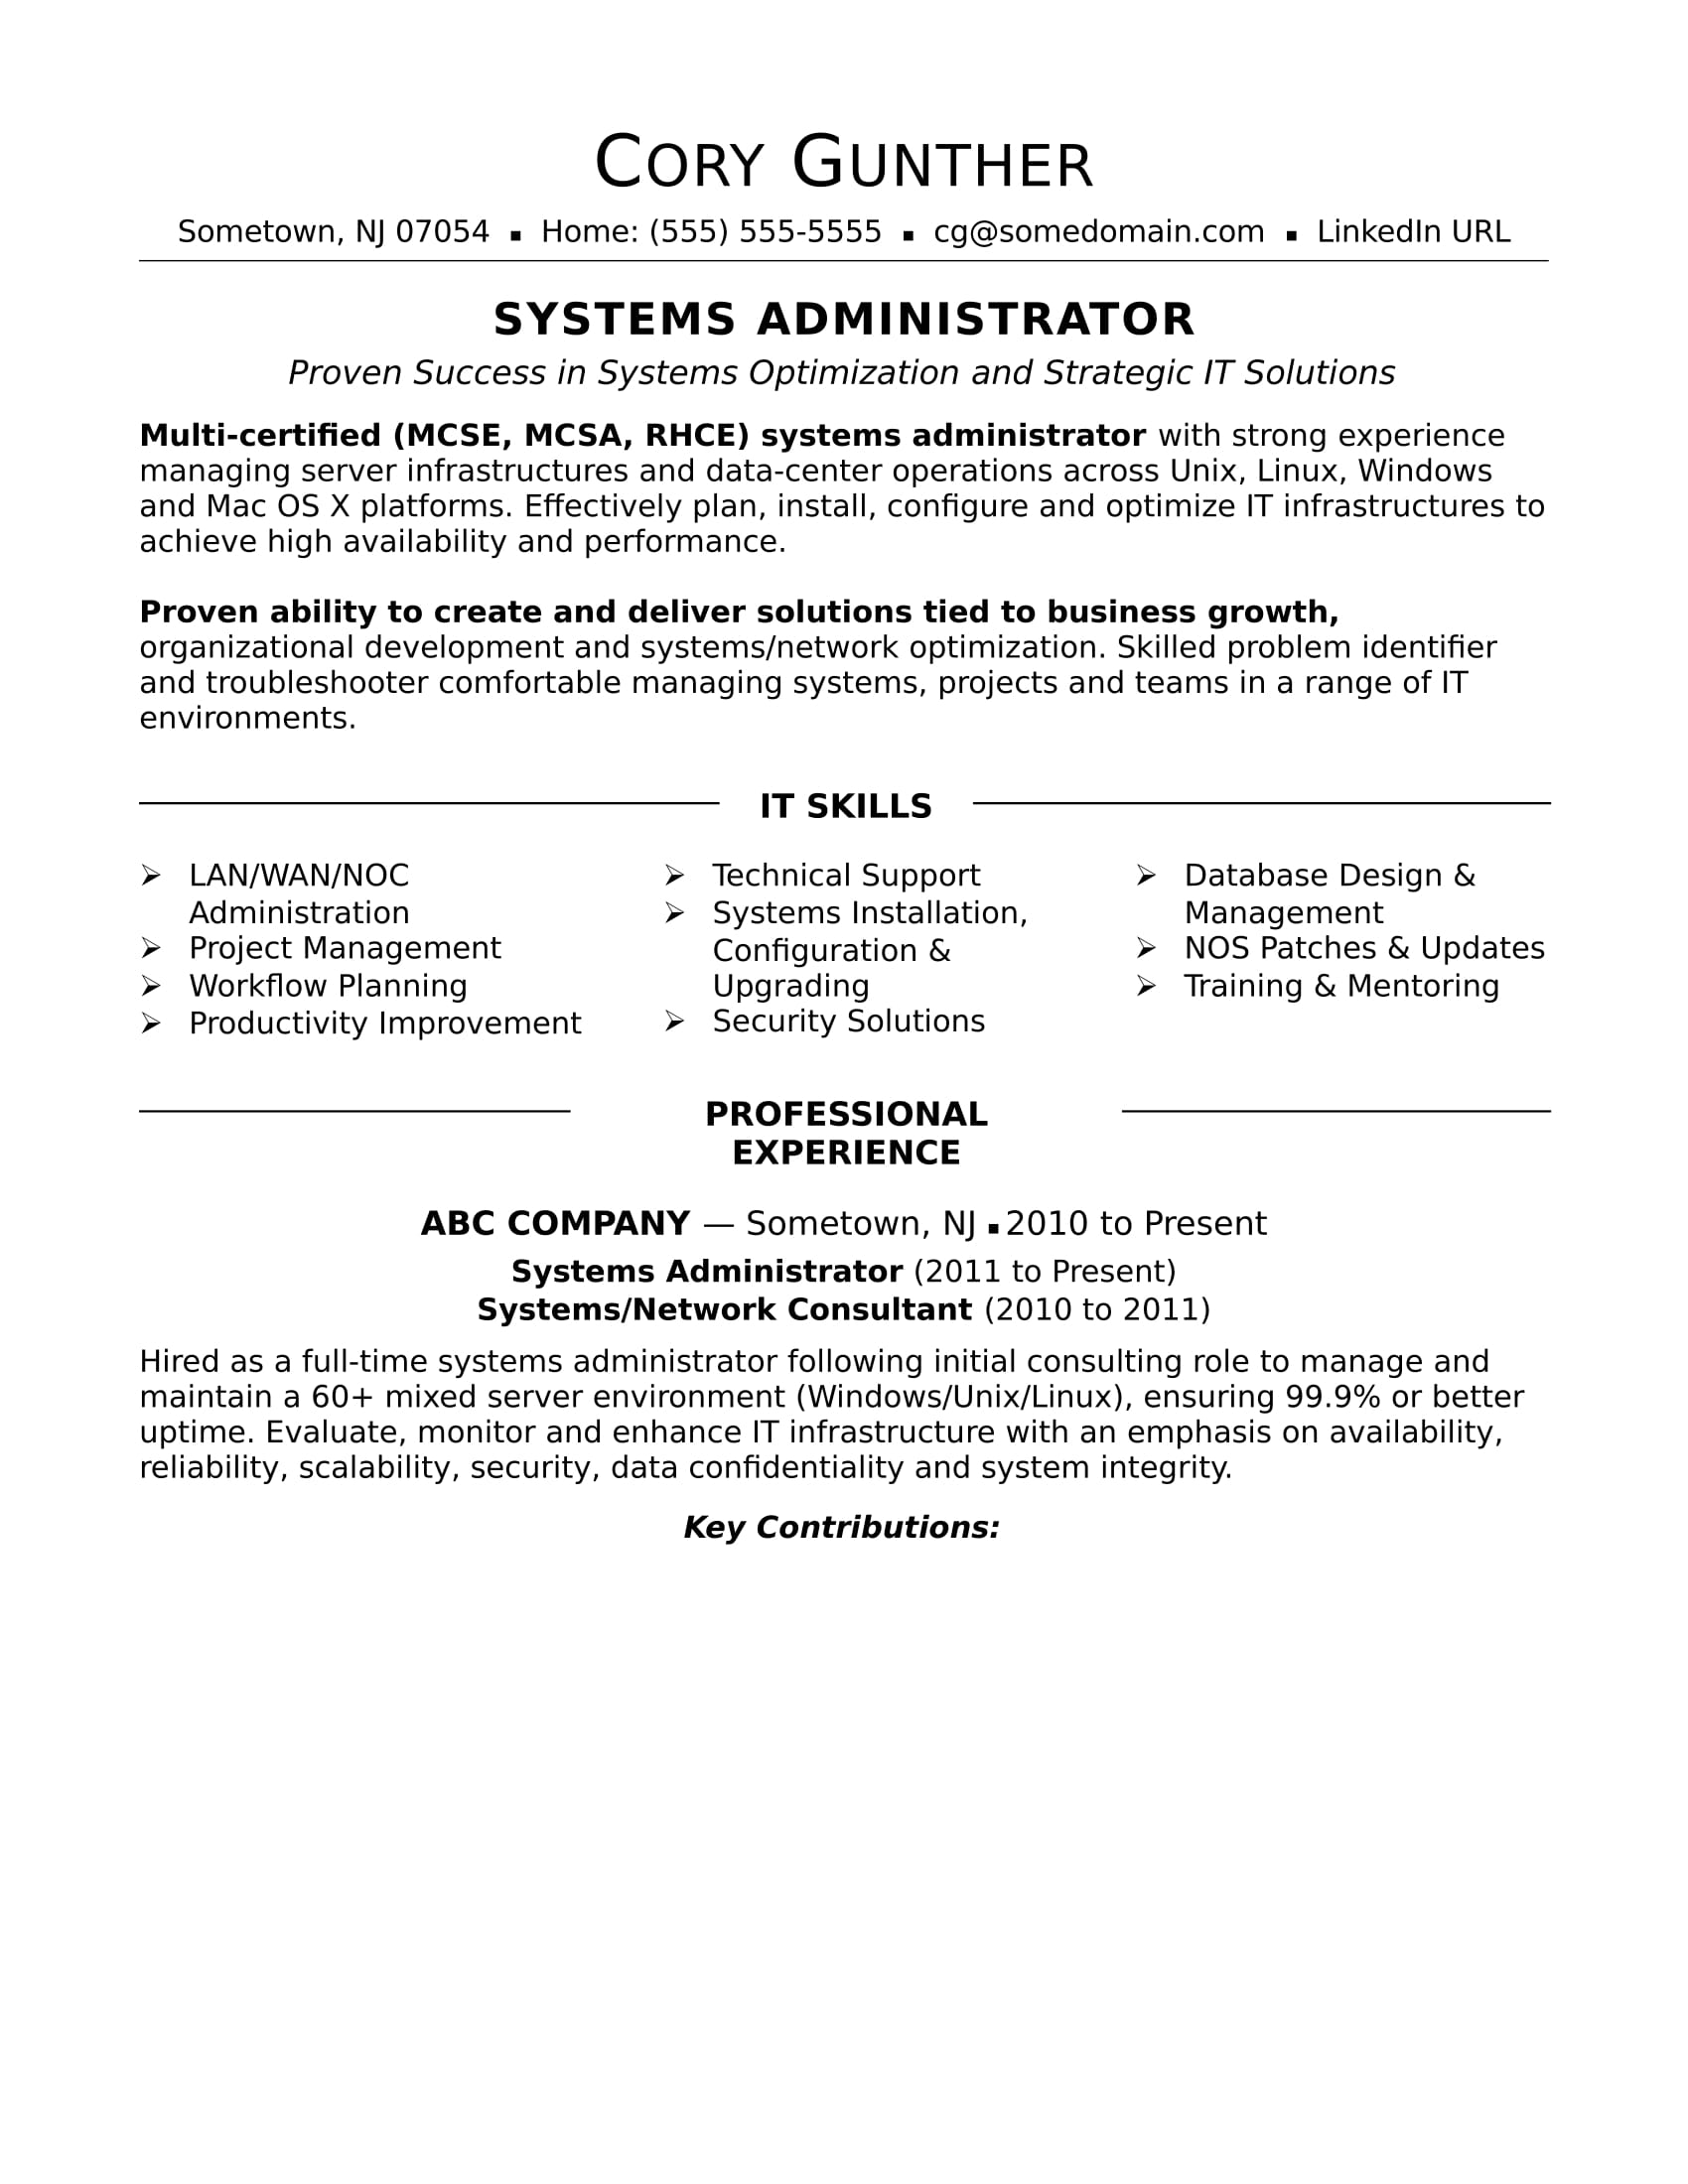 Sample Resume for an Experienced Systems Administrator | Monster.com